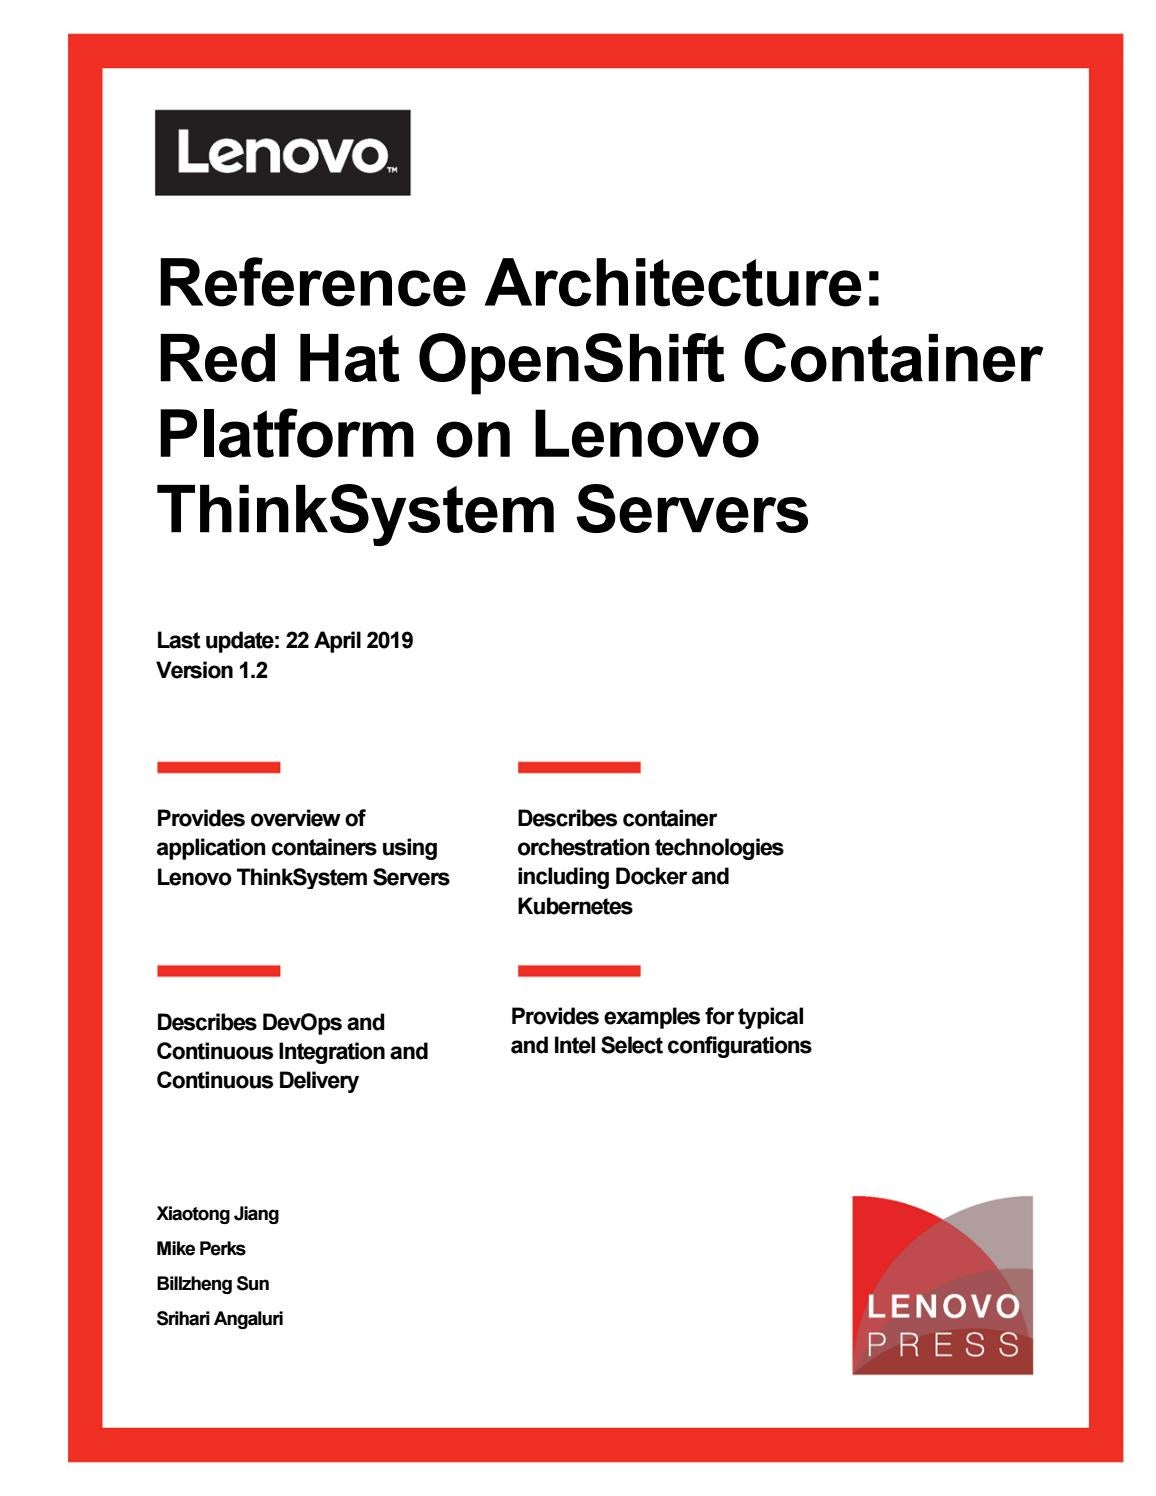 Reference Architecture: Red Hat OpenShift Container Platform